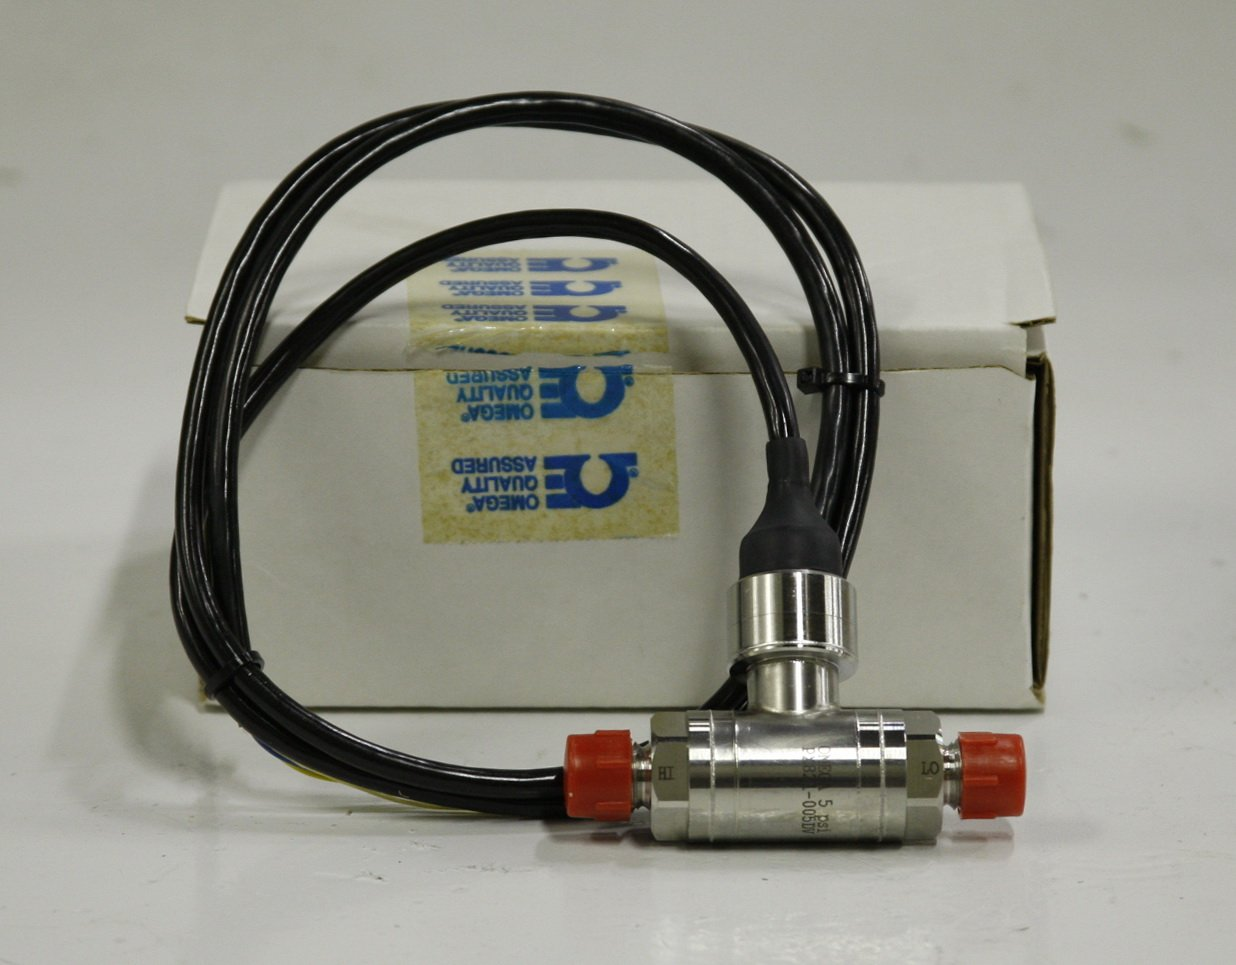 Omega Engineering PX821-005DV Wet Differential Pressure Transducer